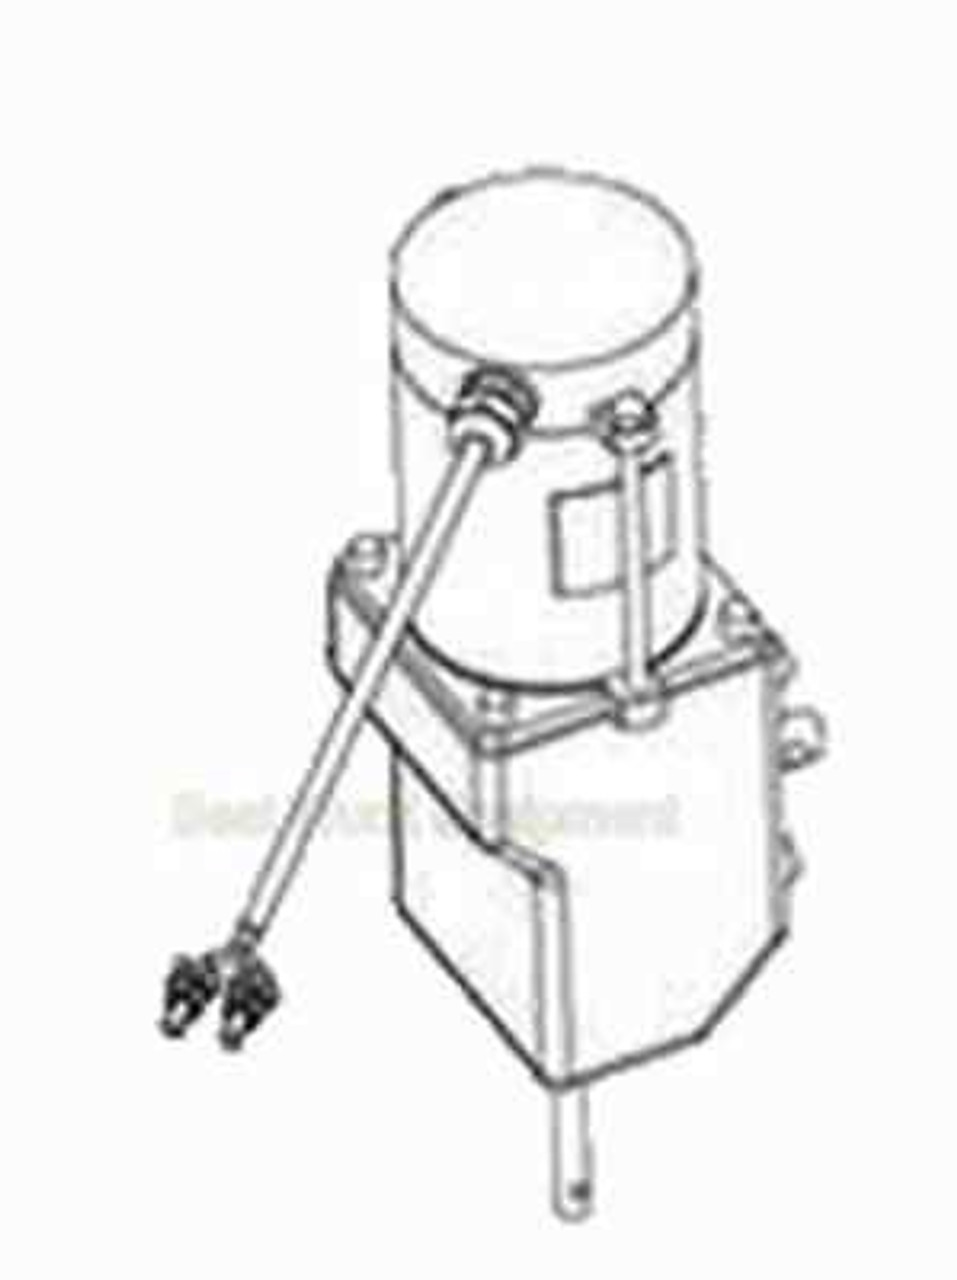 3015377 BUYERS SALTDOGG REPLACEMENT .5 HP 12 VDC DUAL SHAFT GEAR MOTOR FOR TGS03 AND TGS07